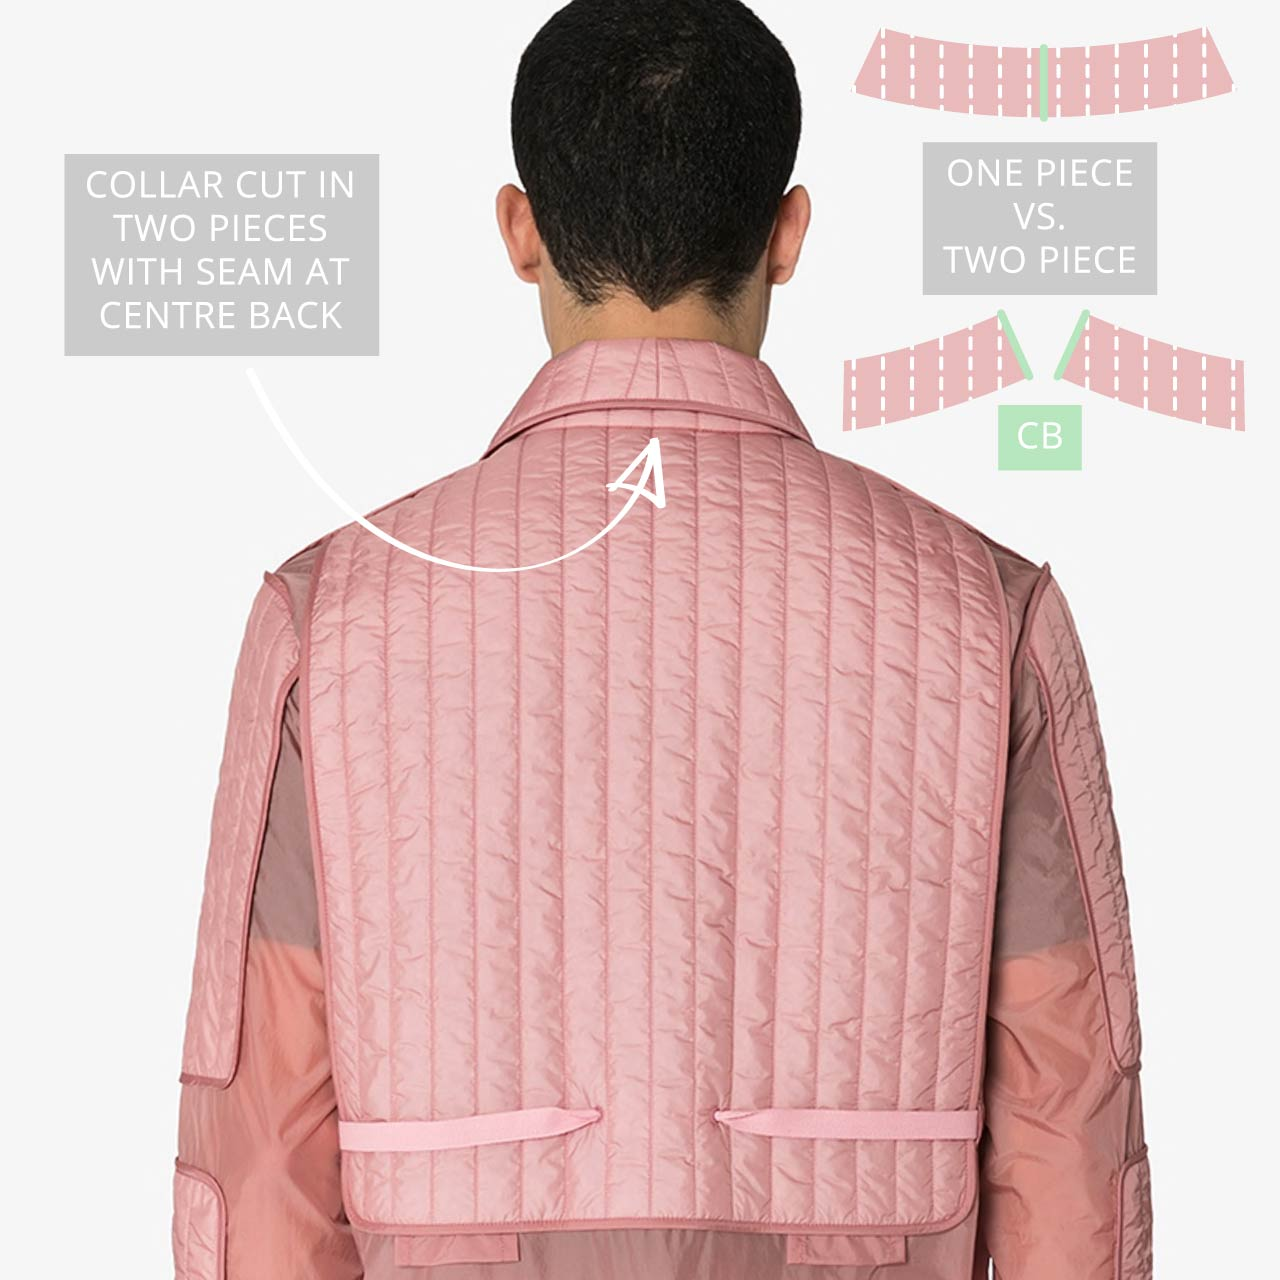 Craig Green Quilted Jacket Details | The Cutting Class. Patter making details, top collar cut in two pieces.